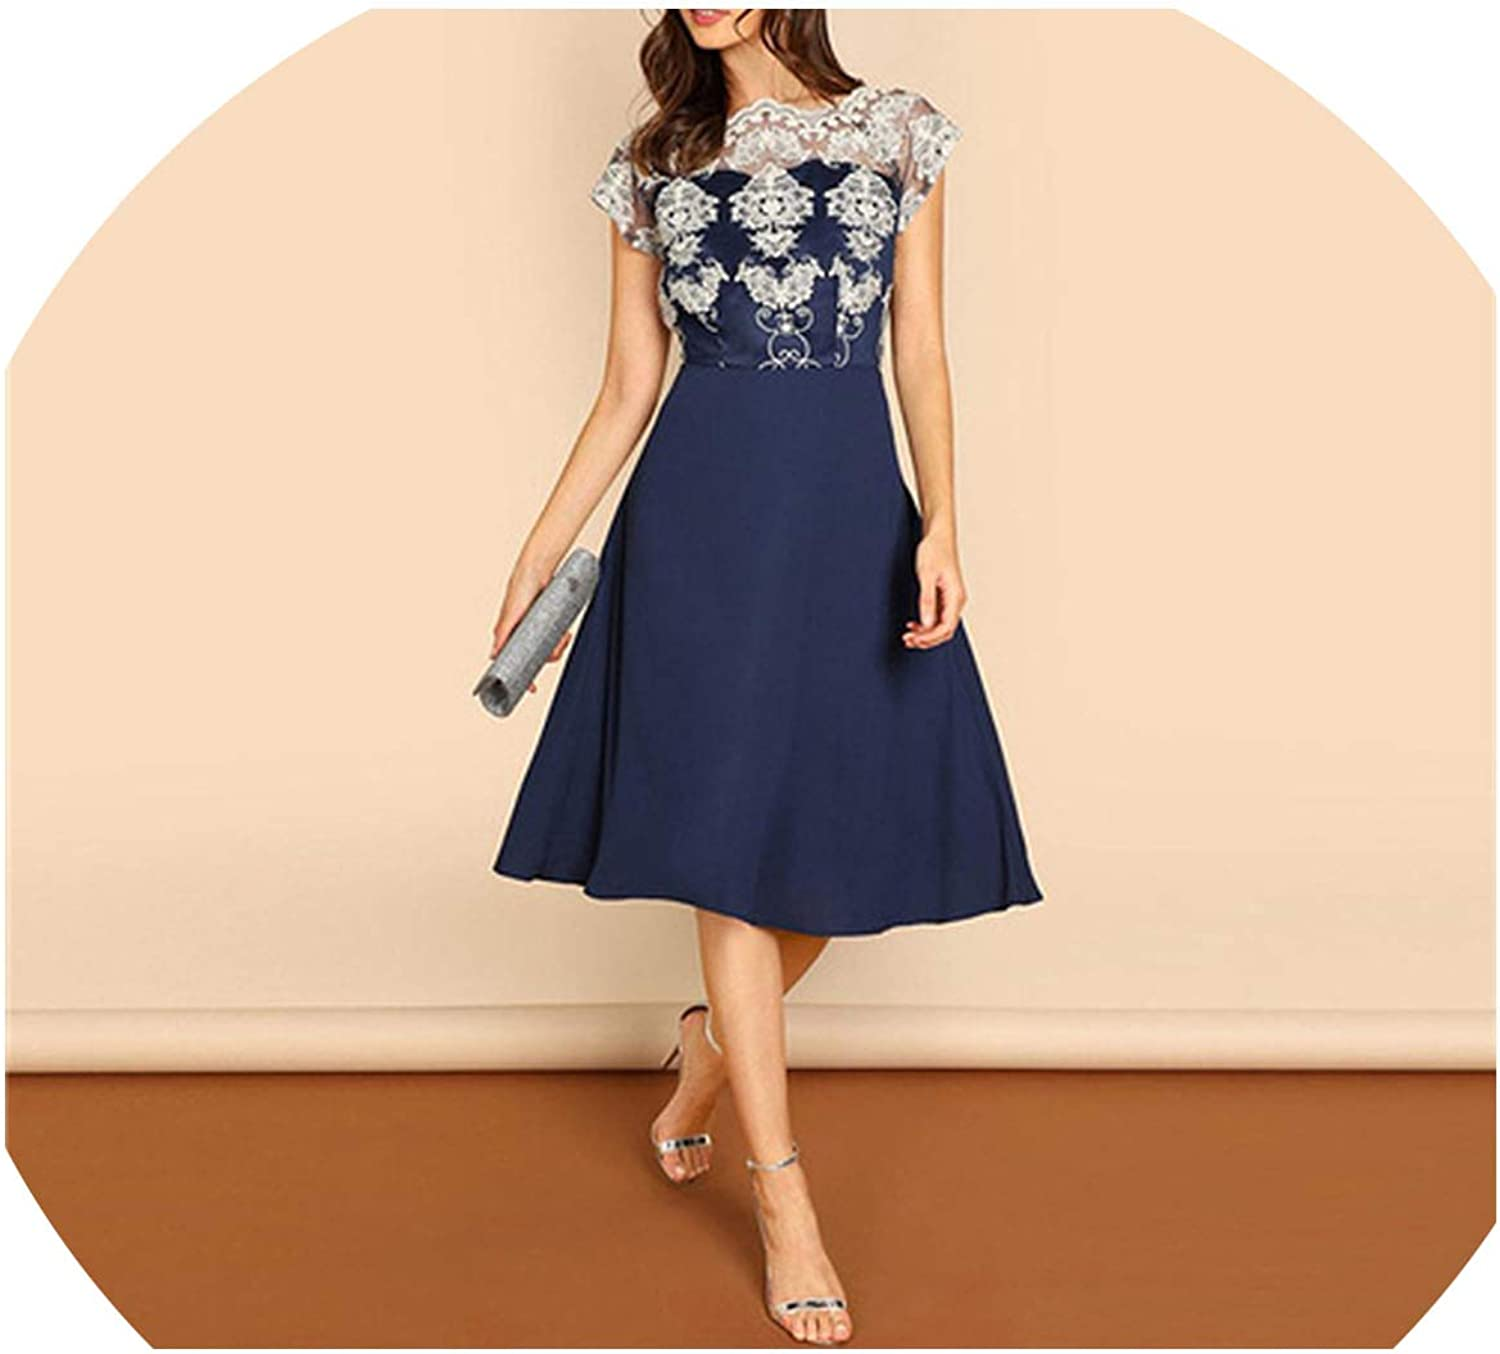 I'll NEVER BE HER Navy Embroidered Mesh Bodice Dress Elegant Short Sleeve Party Dresses Women Spring A Line Dress